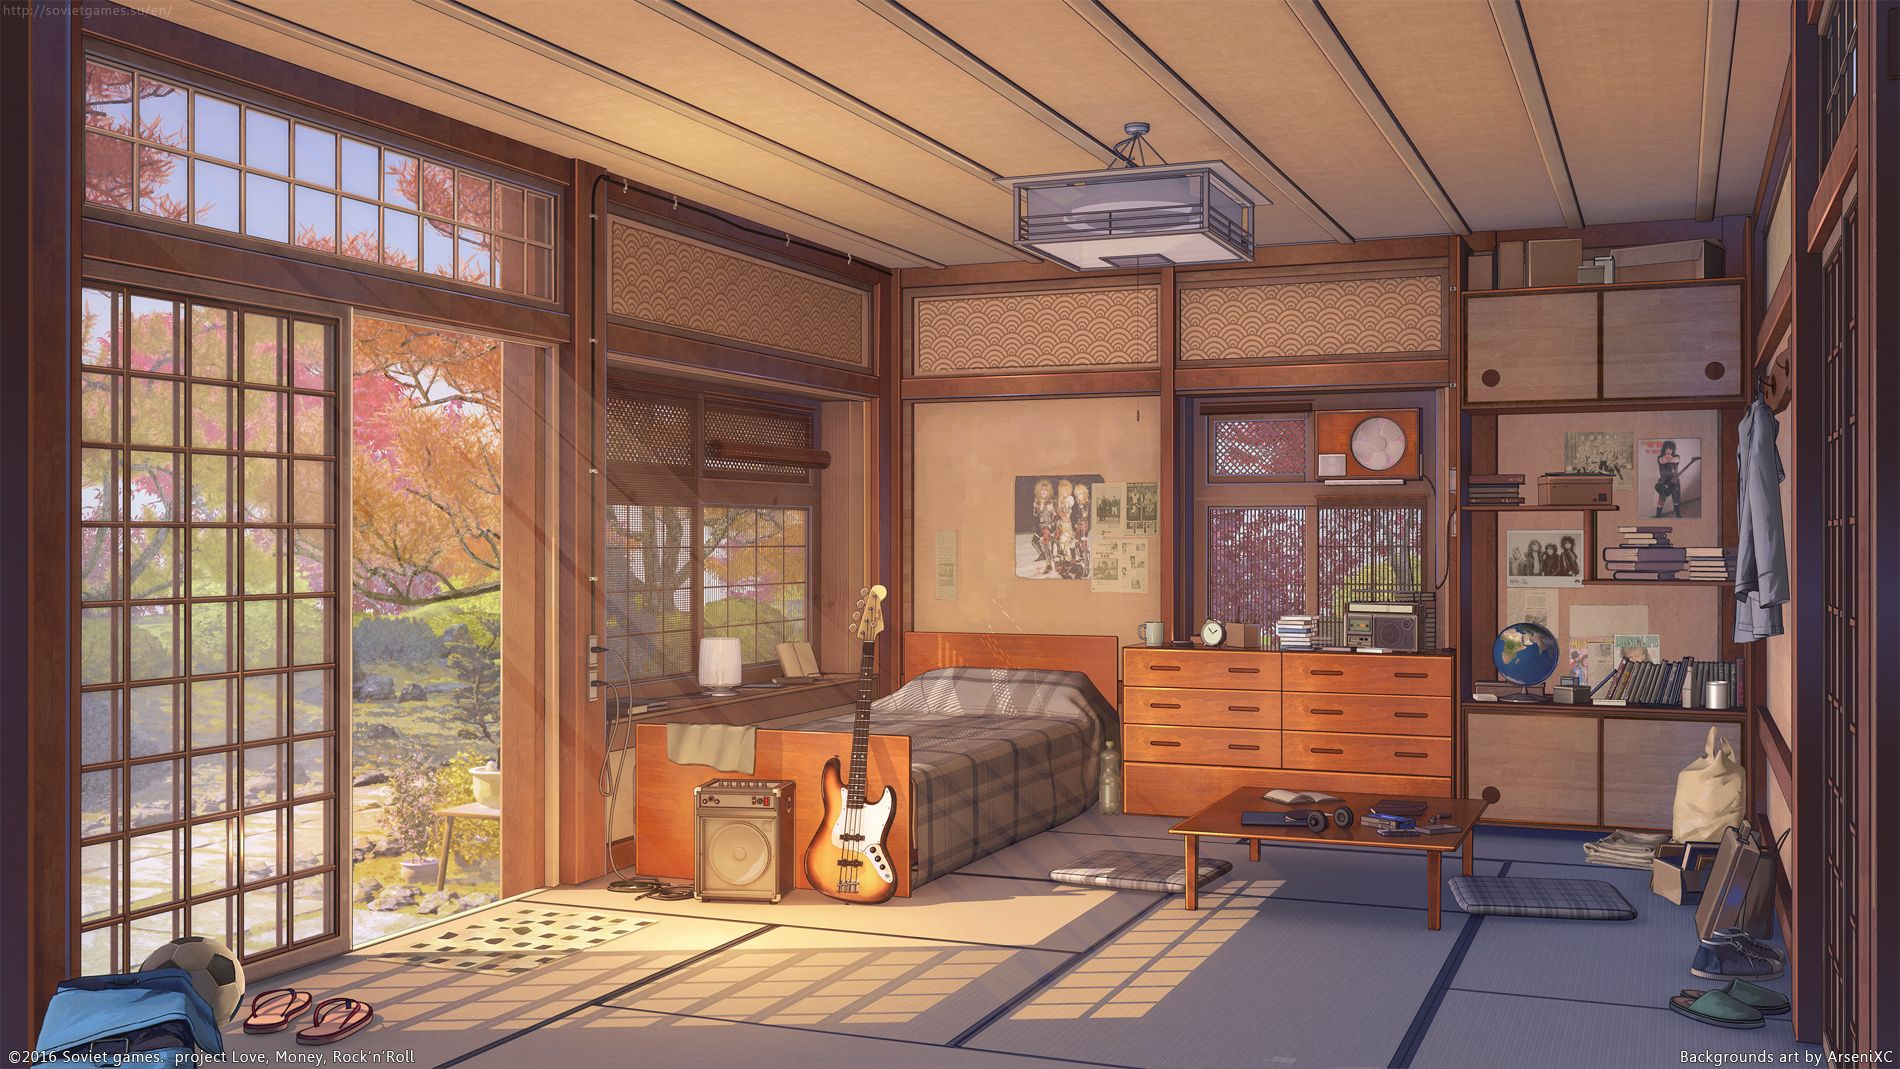 Bedroom Background Painting Http Imgbase Info Images Safe Wallpapers Anime Anime